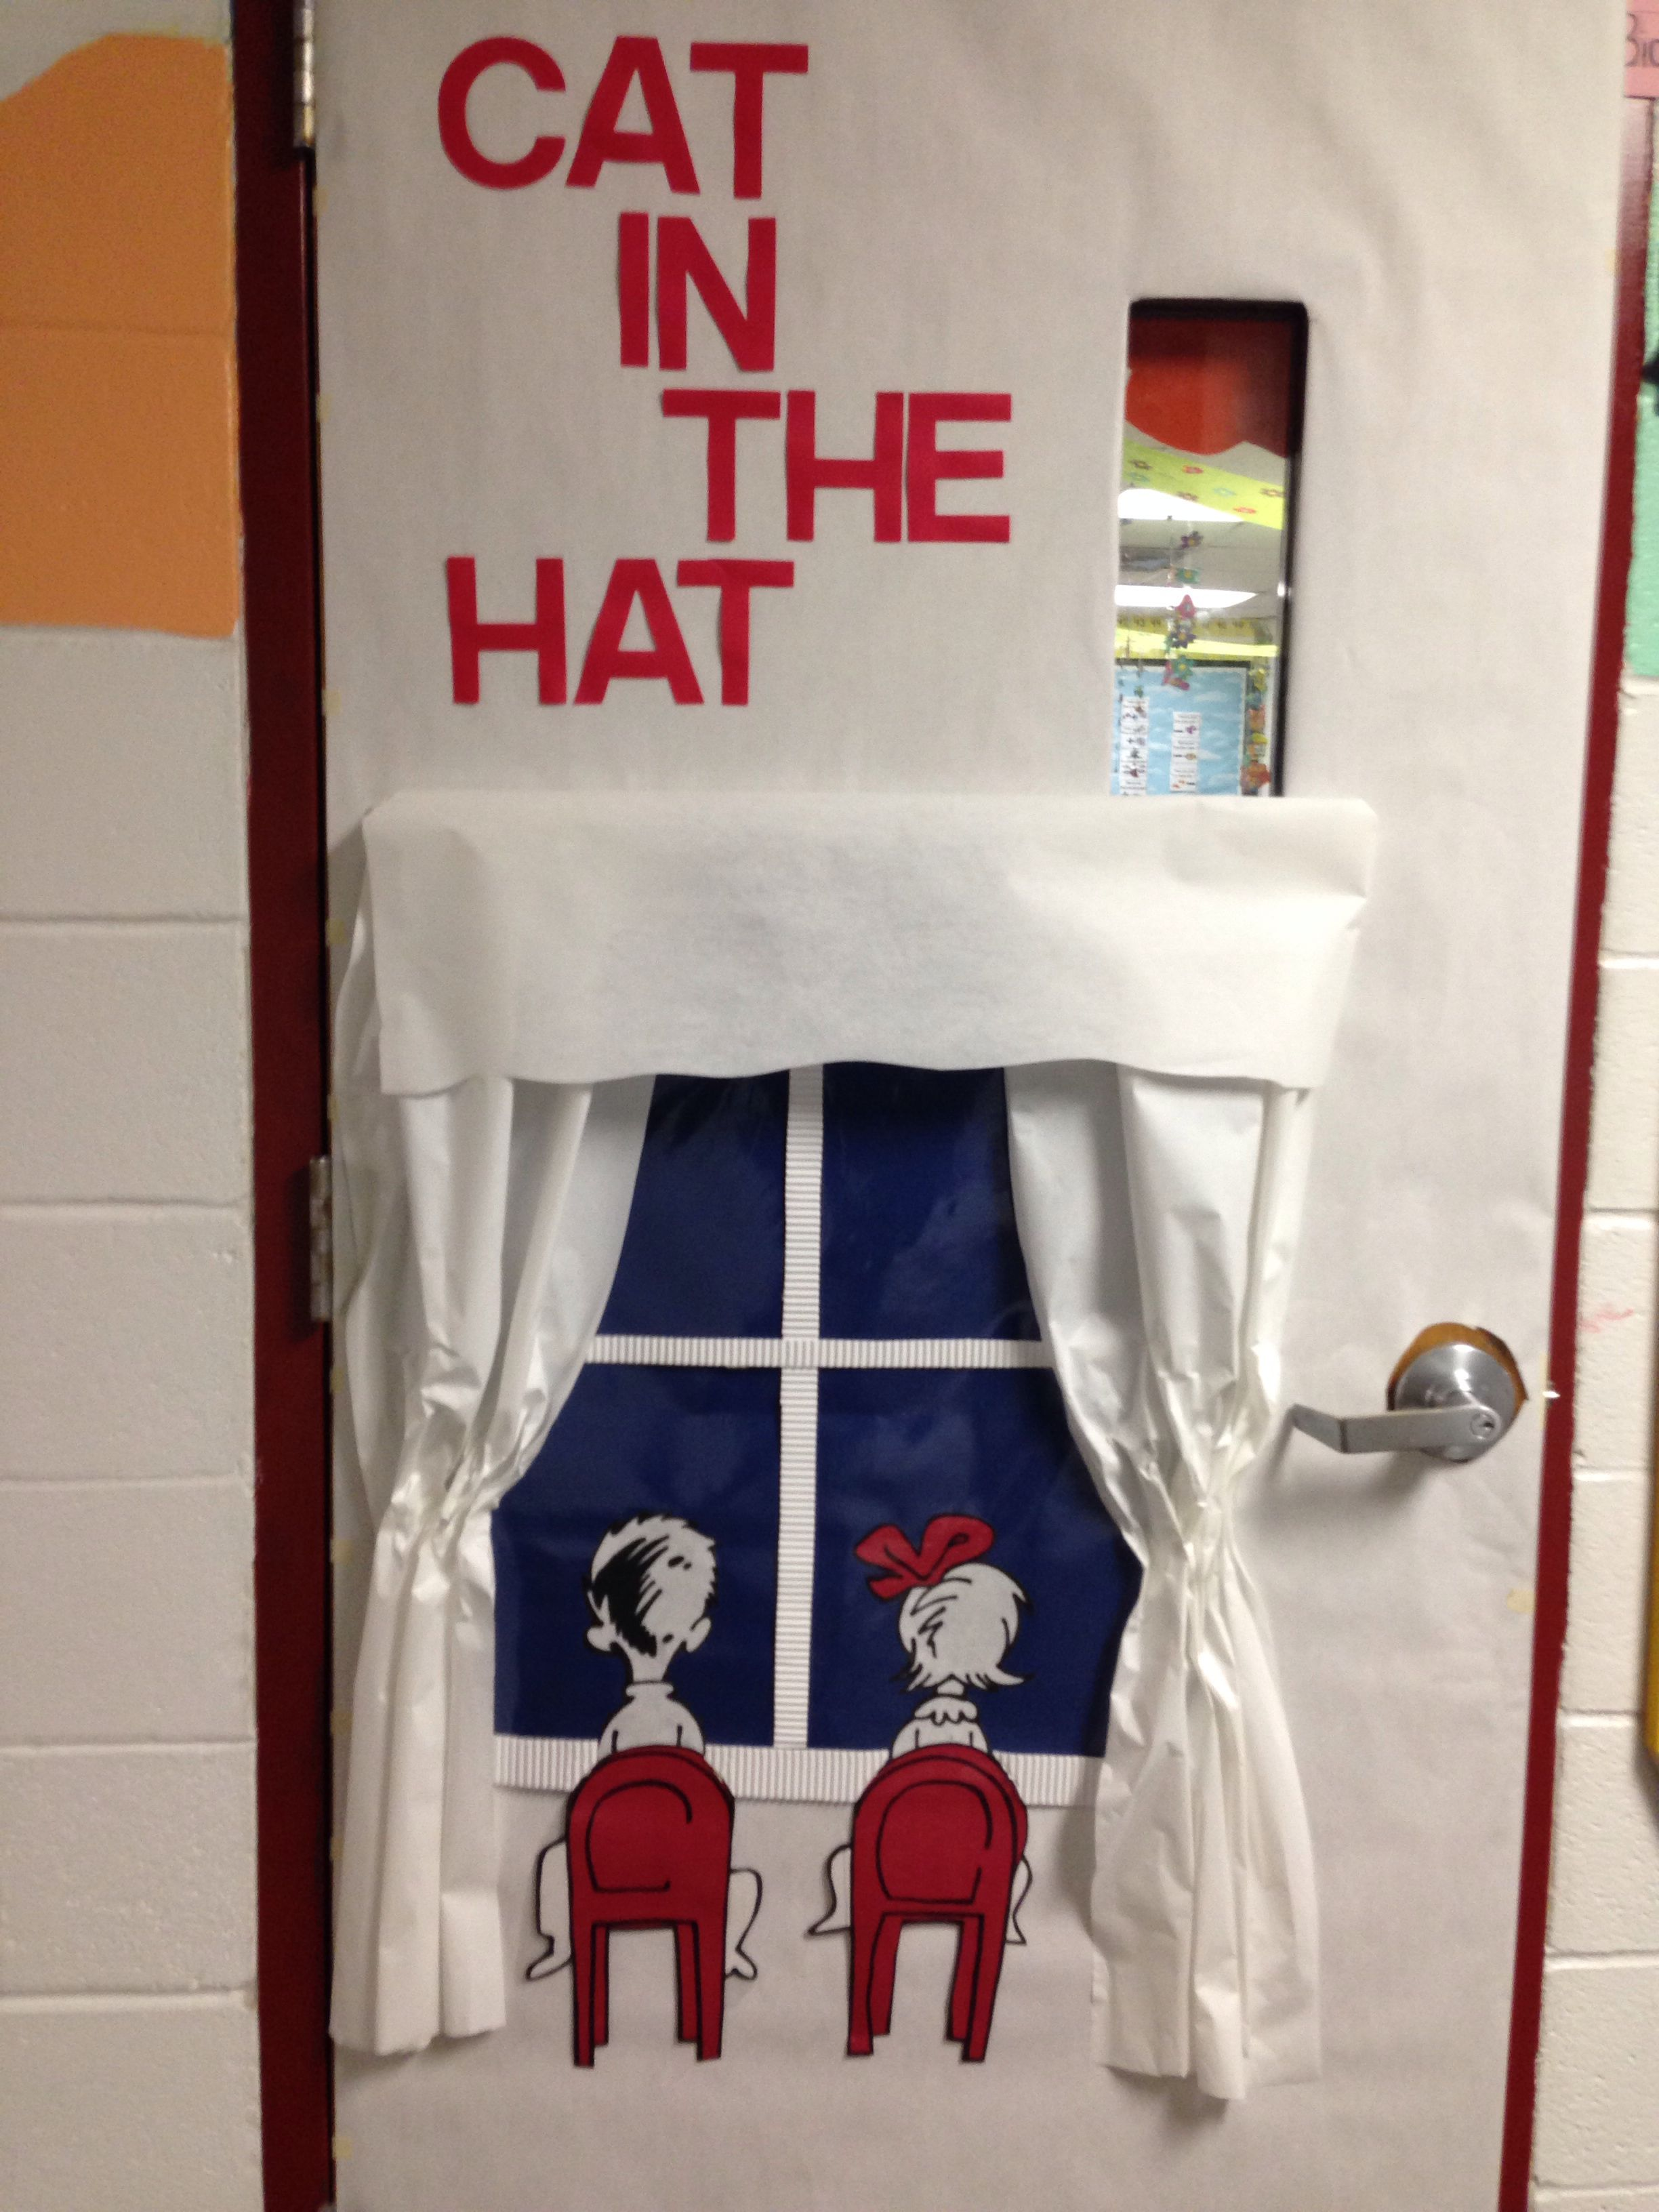 Pin By Usa Texas On Elementary Crafts Cat In The Hat Door Decoration Classroom Decorations Dr Seuss Door Decorations